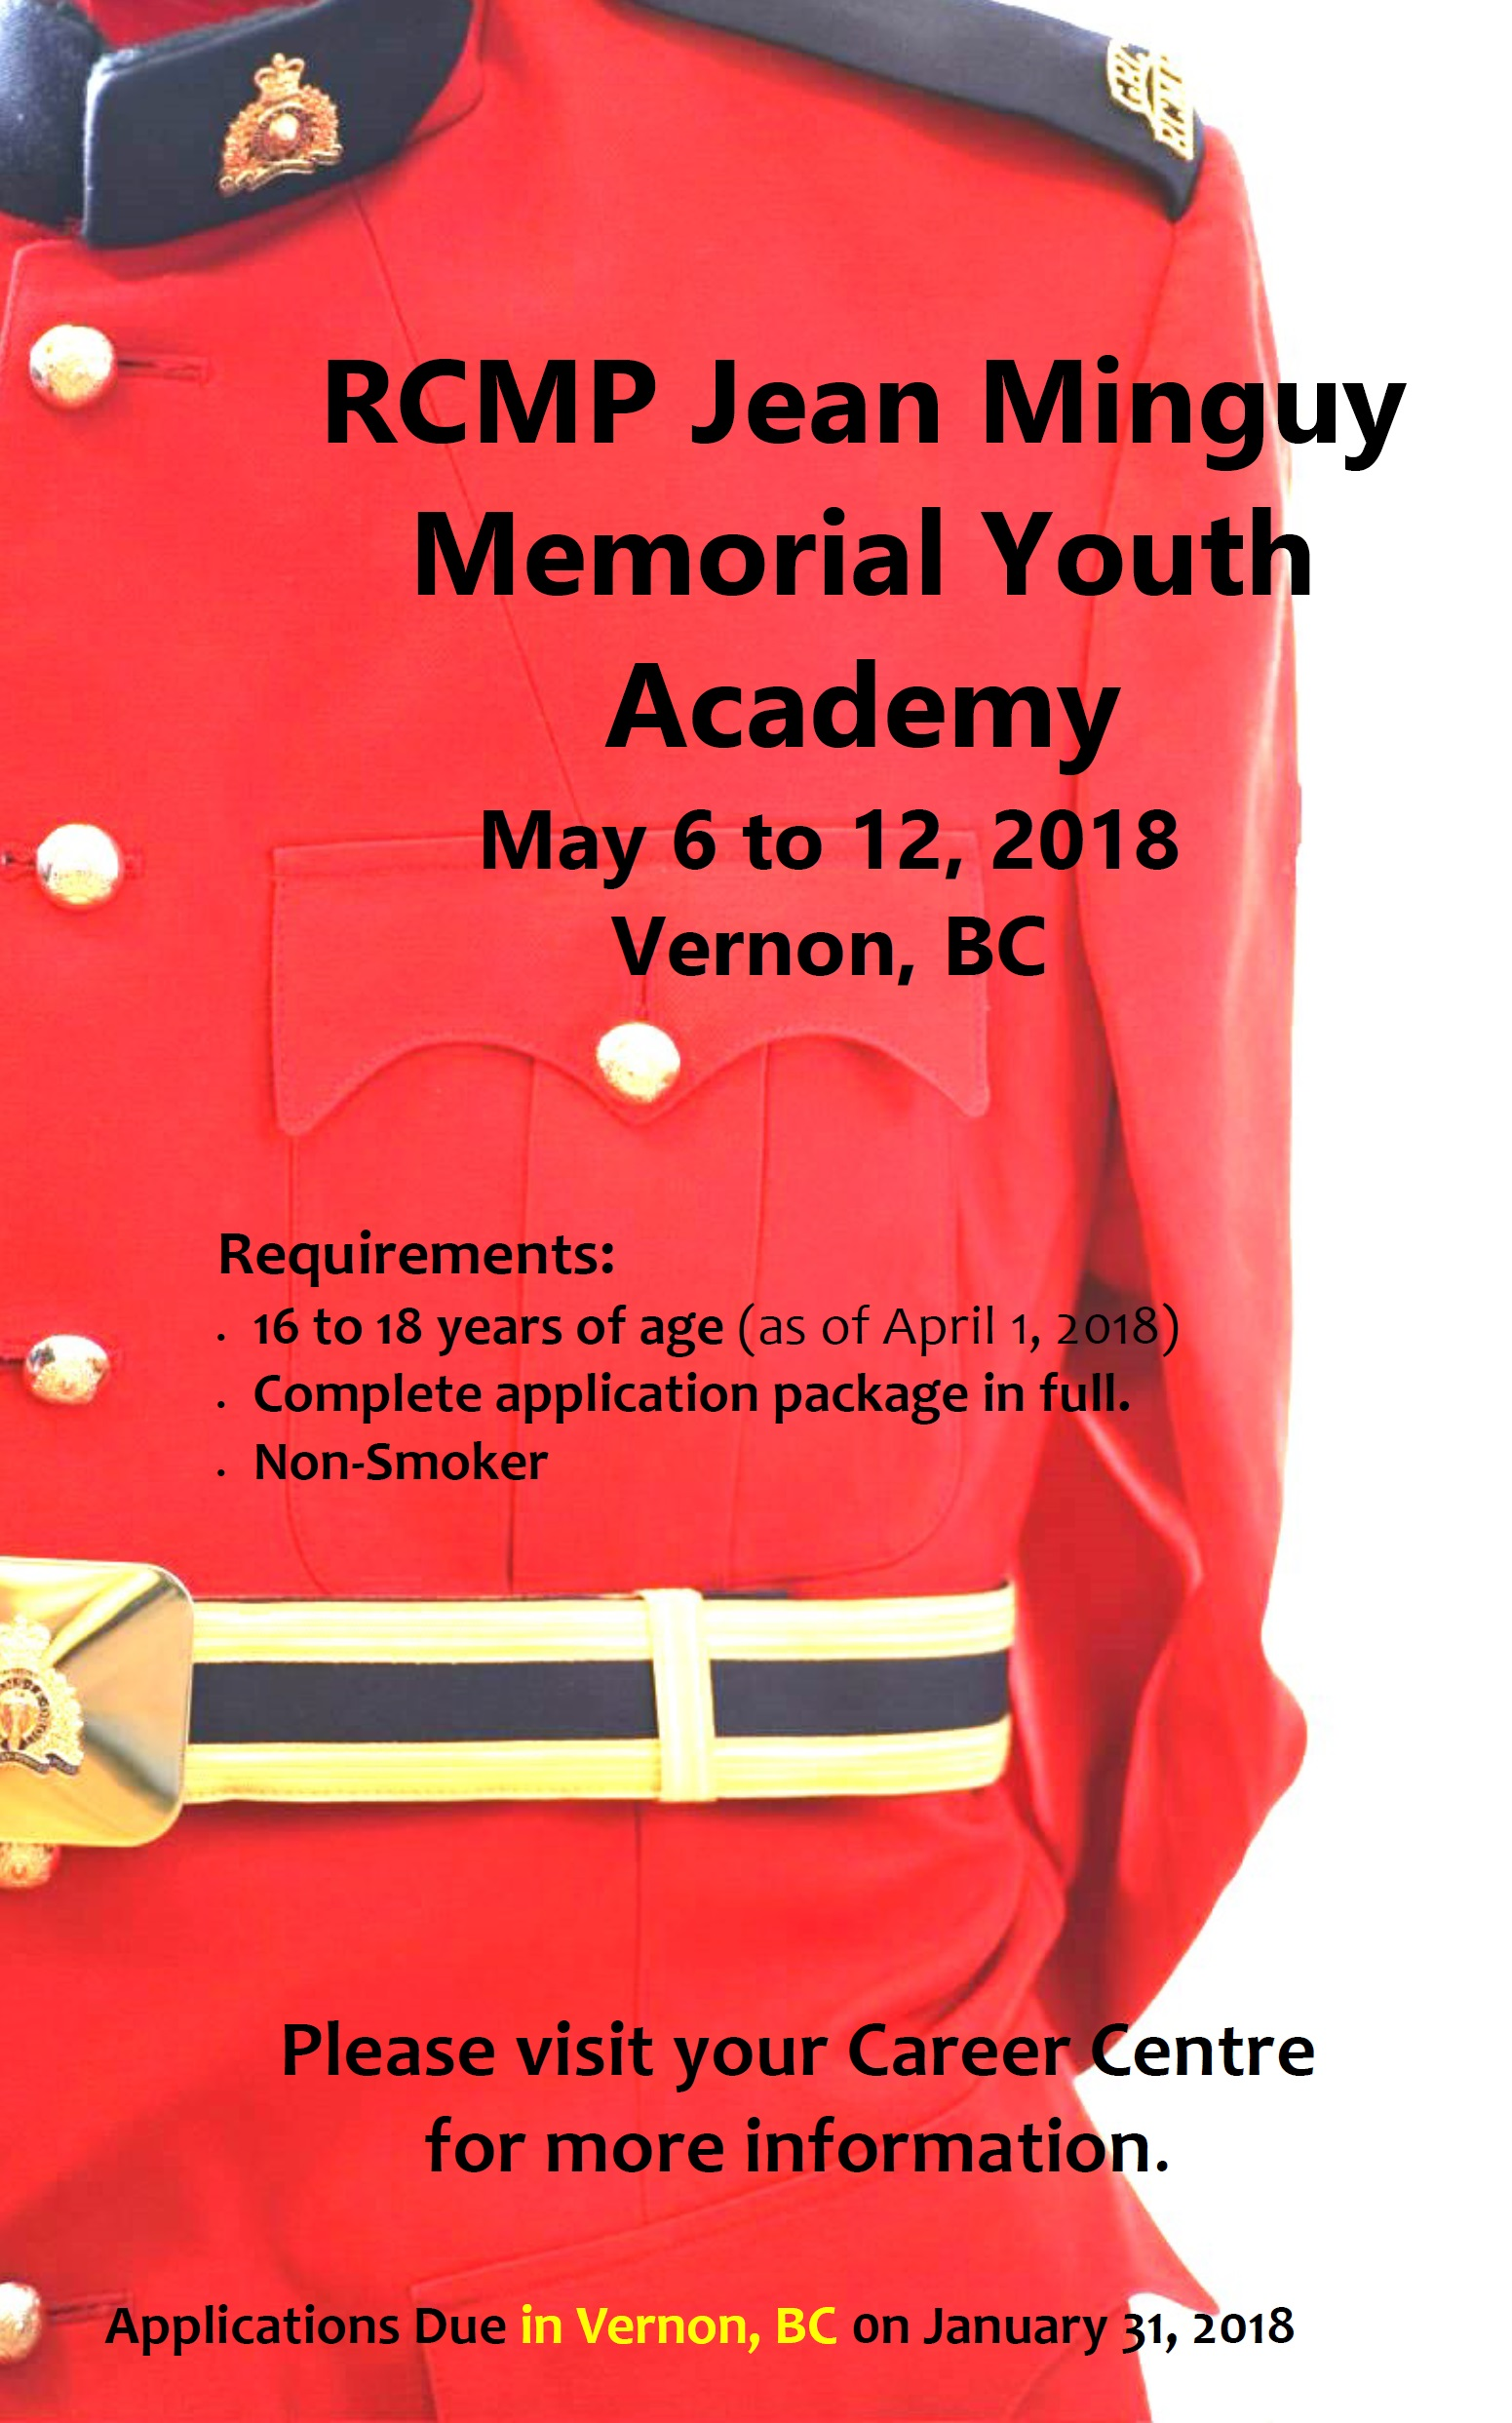 2018 RCMP Jean Minguy Memorial Youth Academy